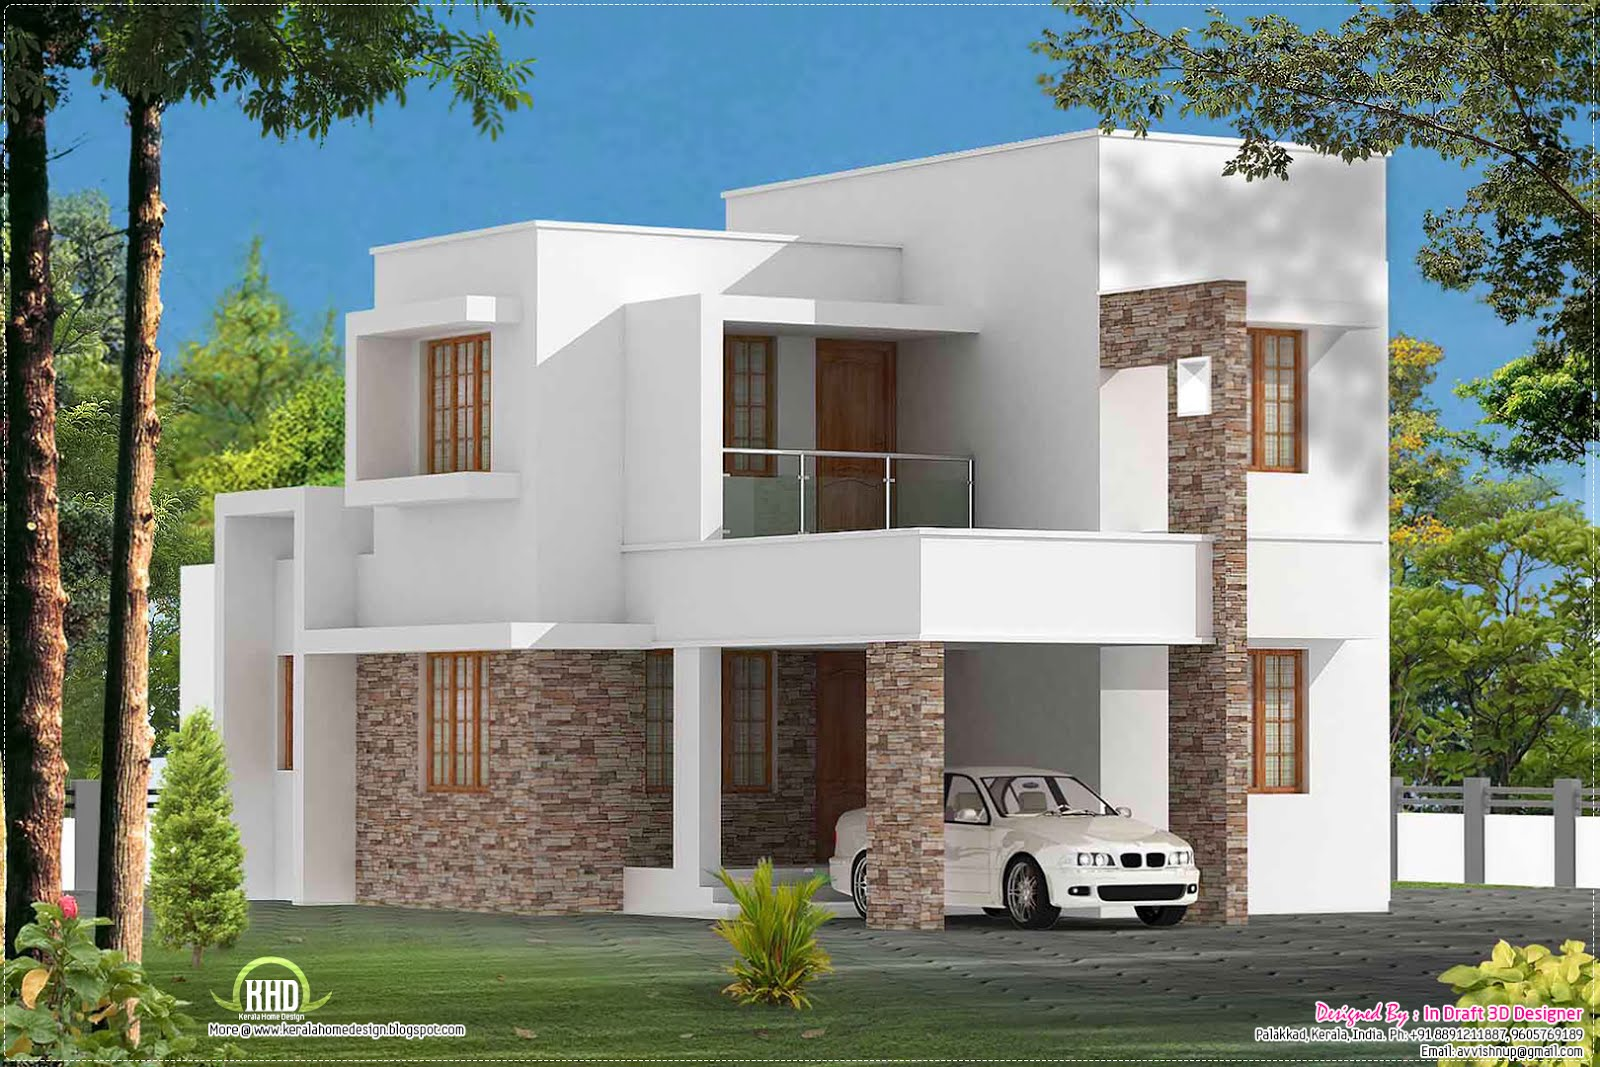 Simple 3 bed room contemporary villa kerala home design for Simple house plans in india